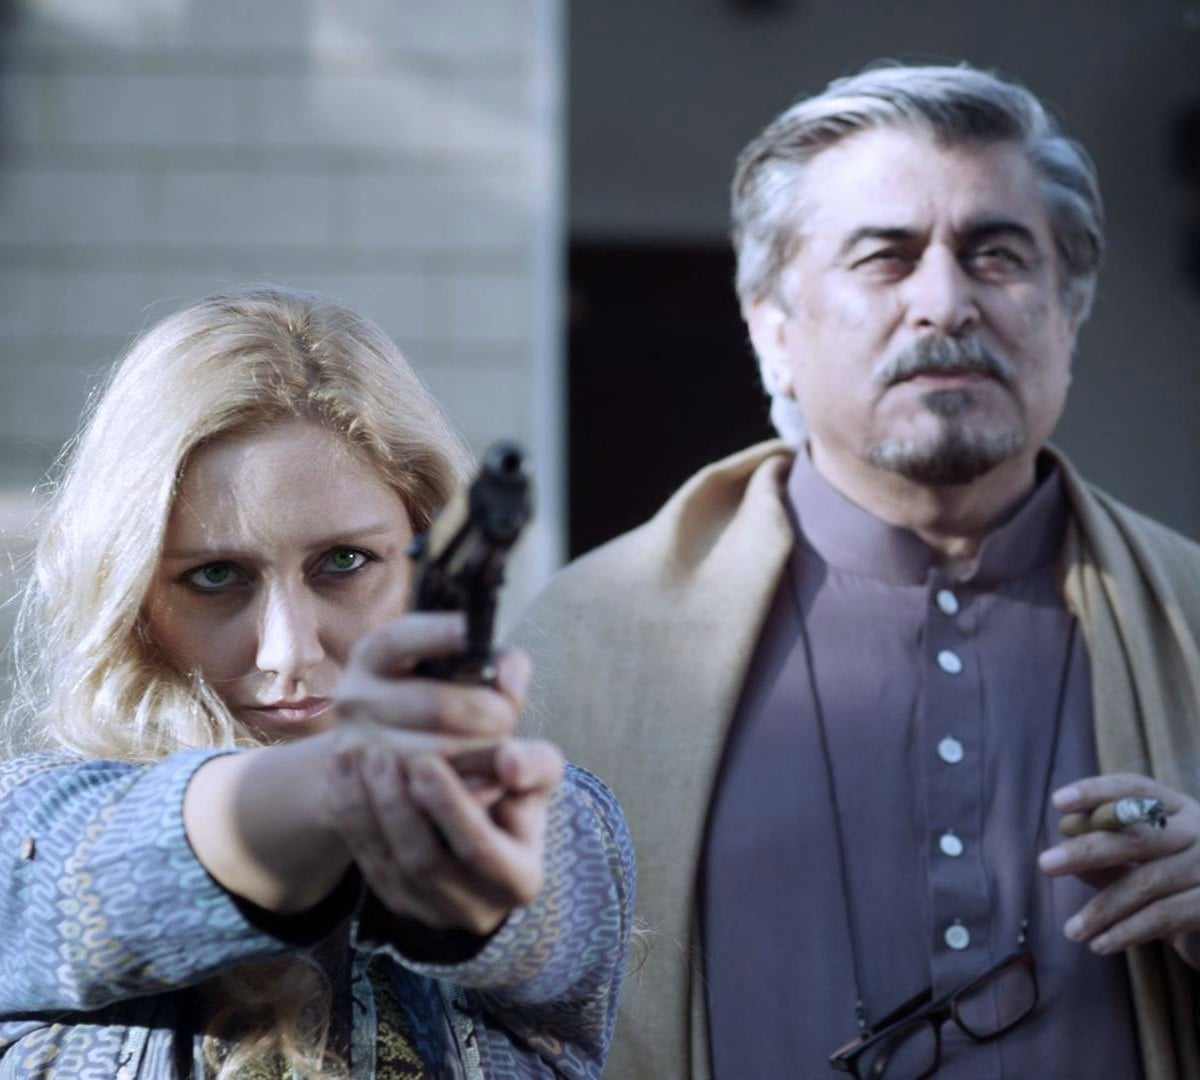 Turkish actress Emil Karakose stars as Jamal Shah's daughter in the film